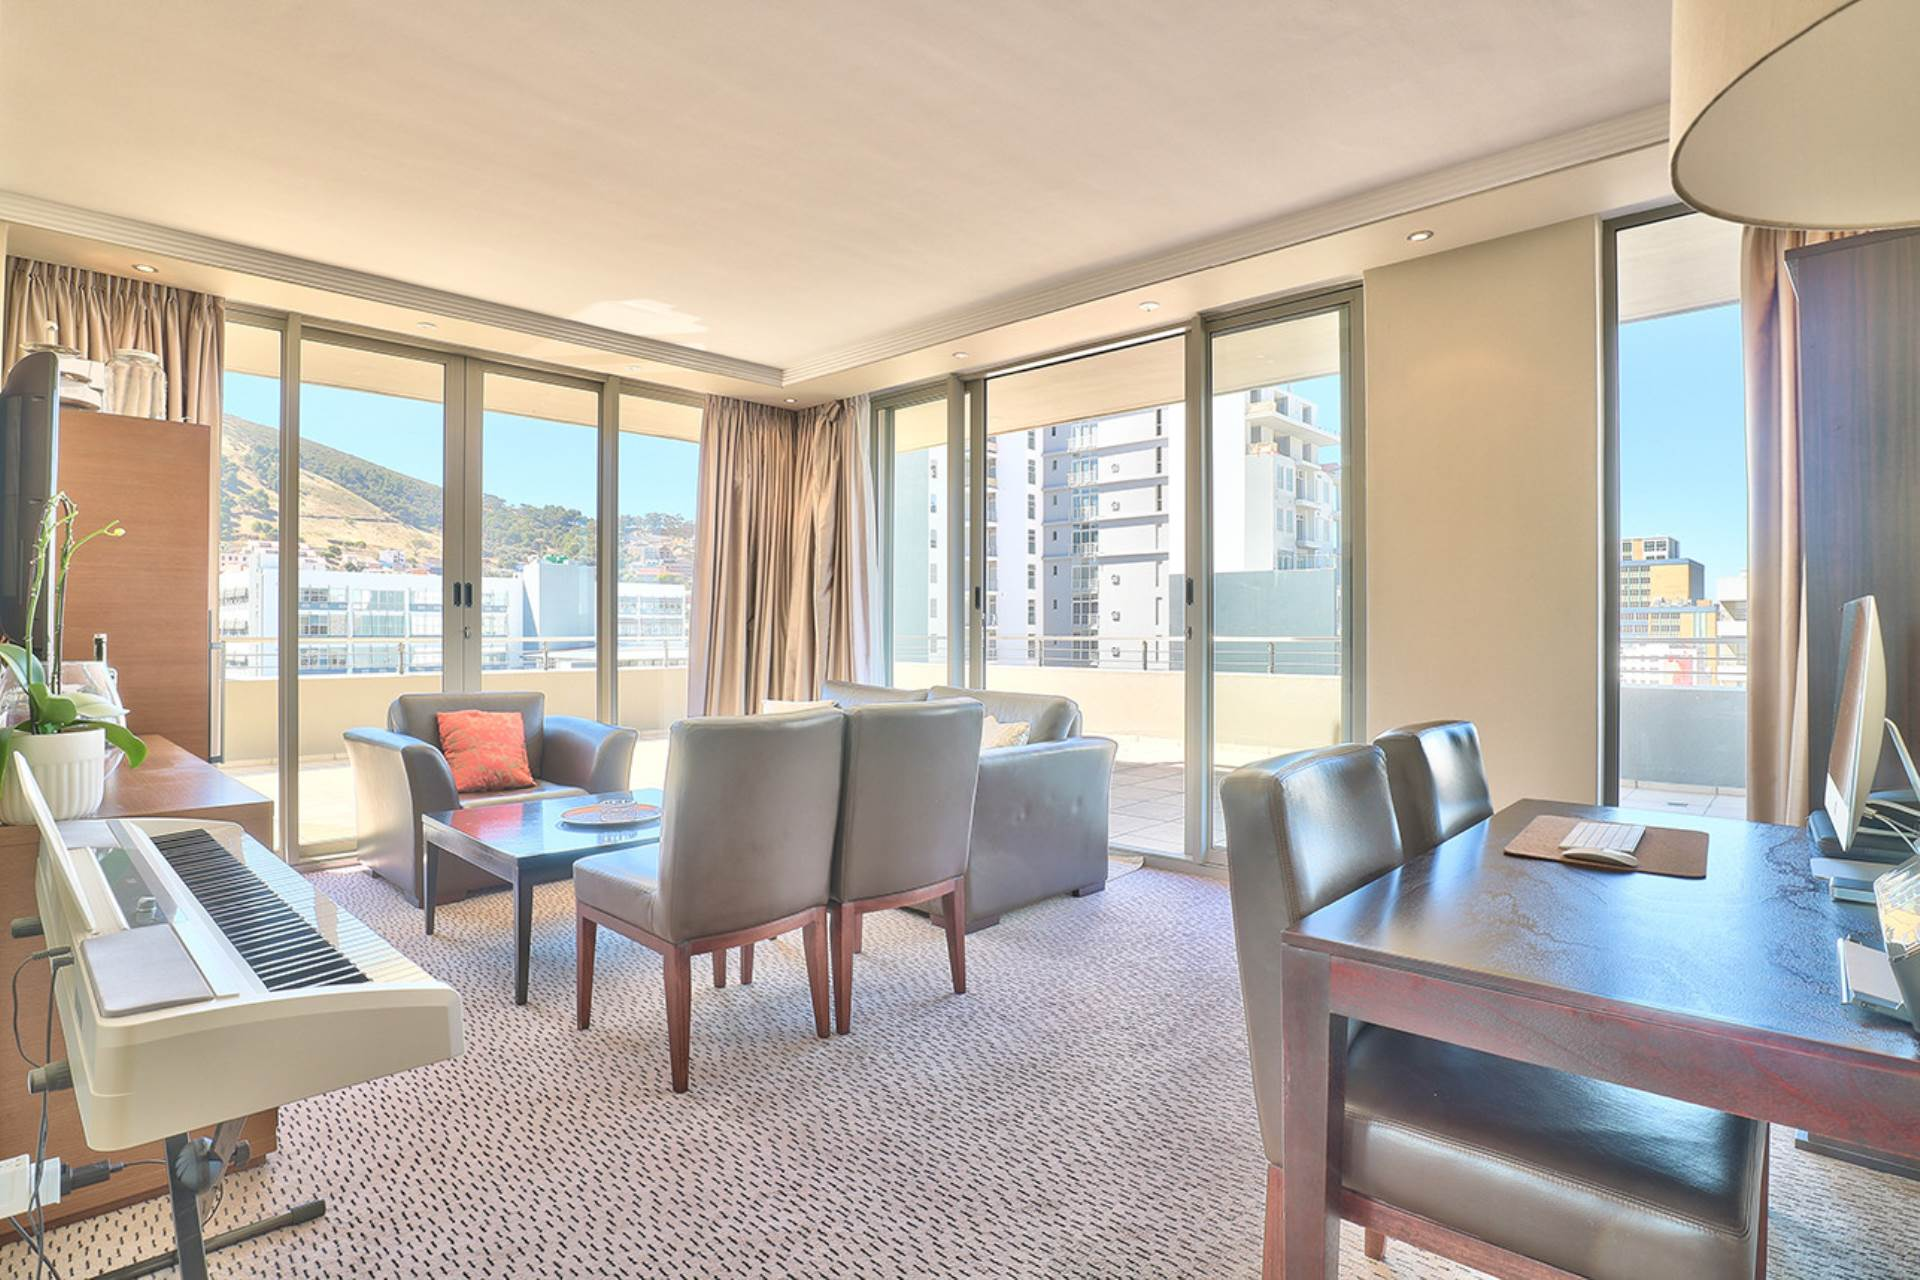 Apartment For Sale In Cape Town 2 Bedroom 13569850 3 1 Cyberprop